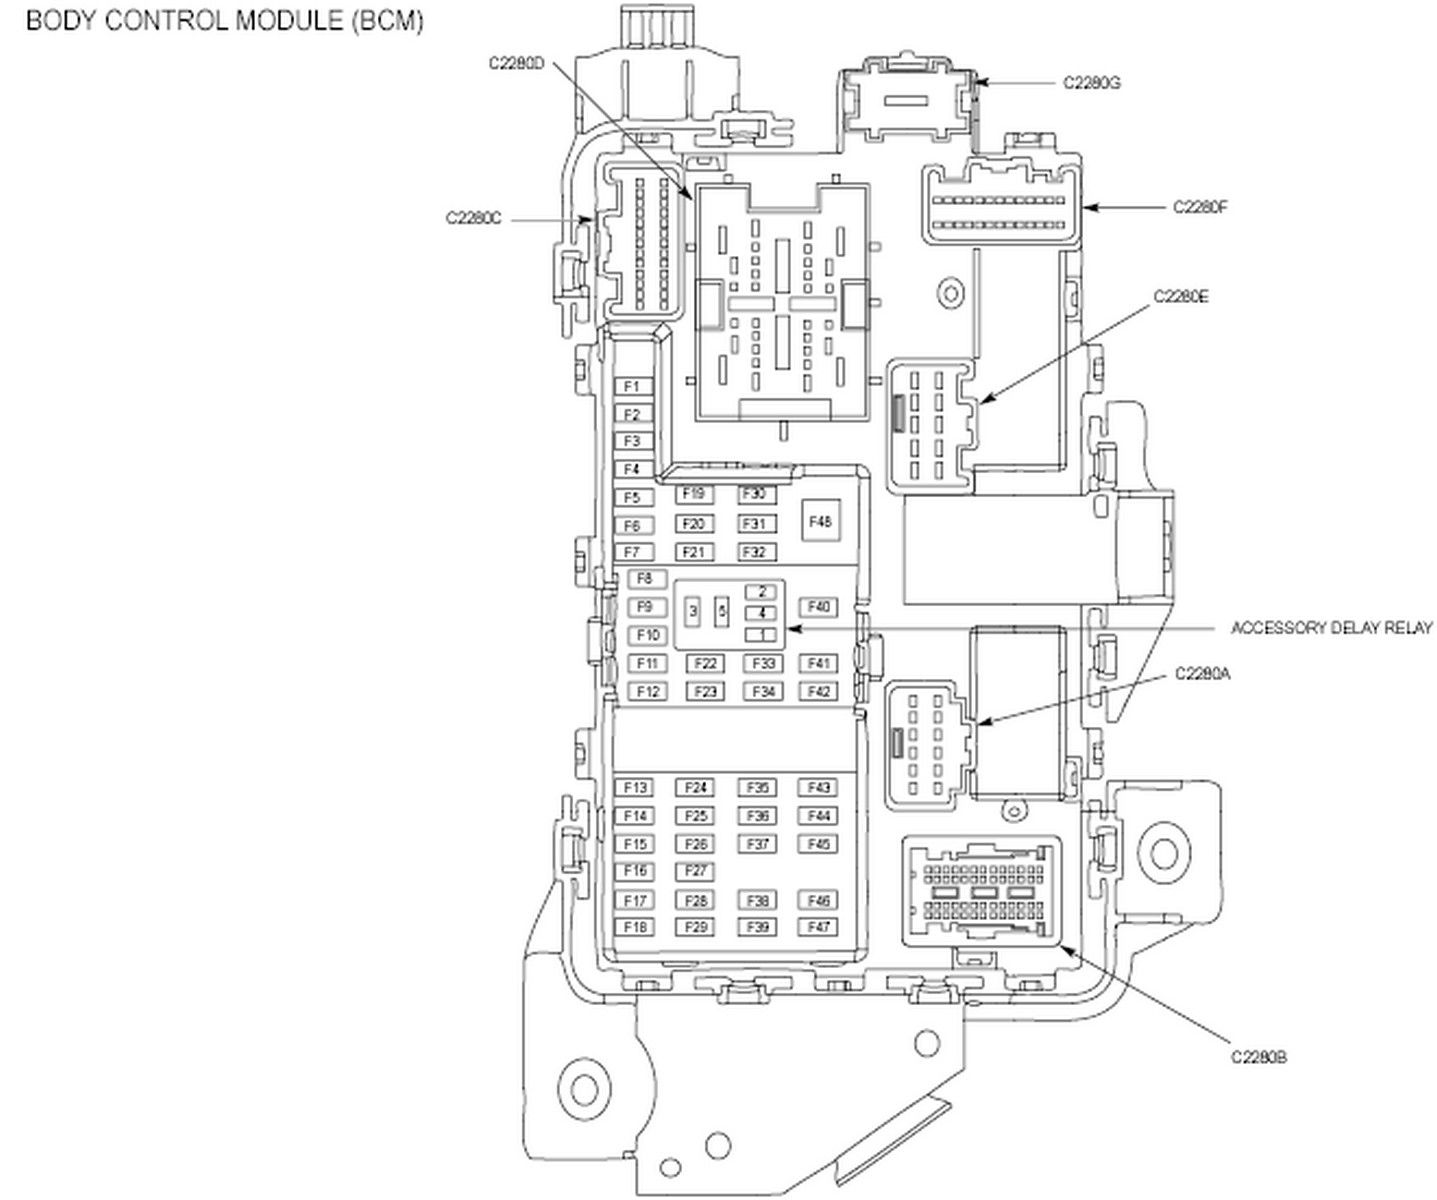 2011 ford f450 wiring diagram 2011 discover your wiring diagram truck running light wiring 2011 ford f450 wiring diagram